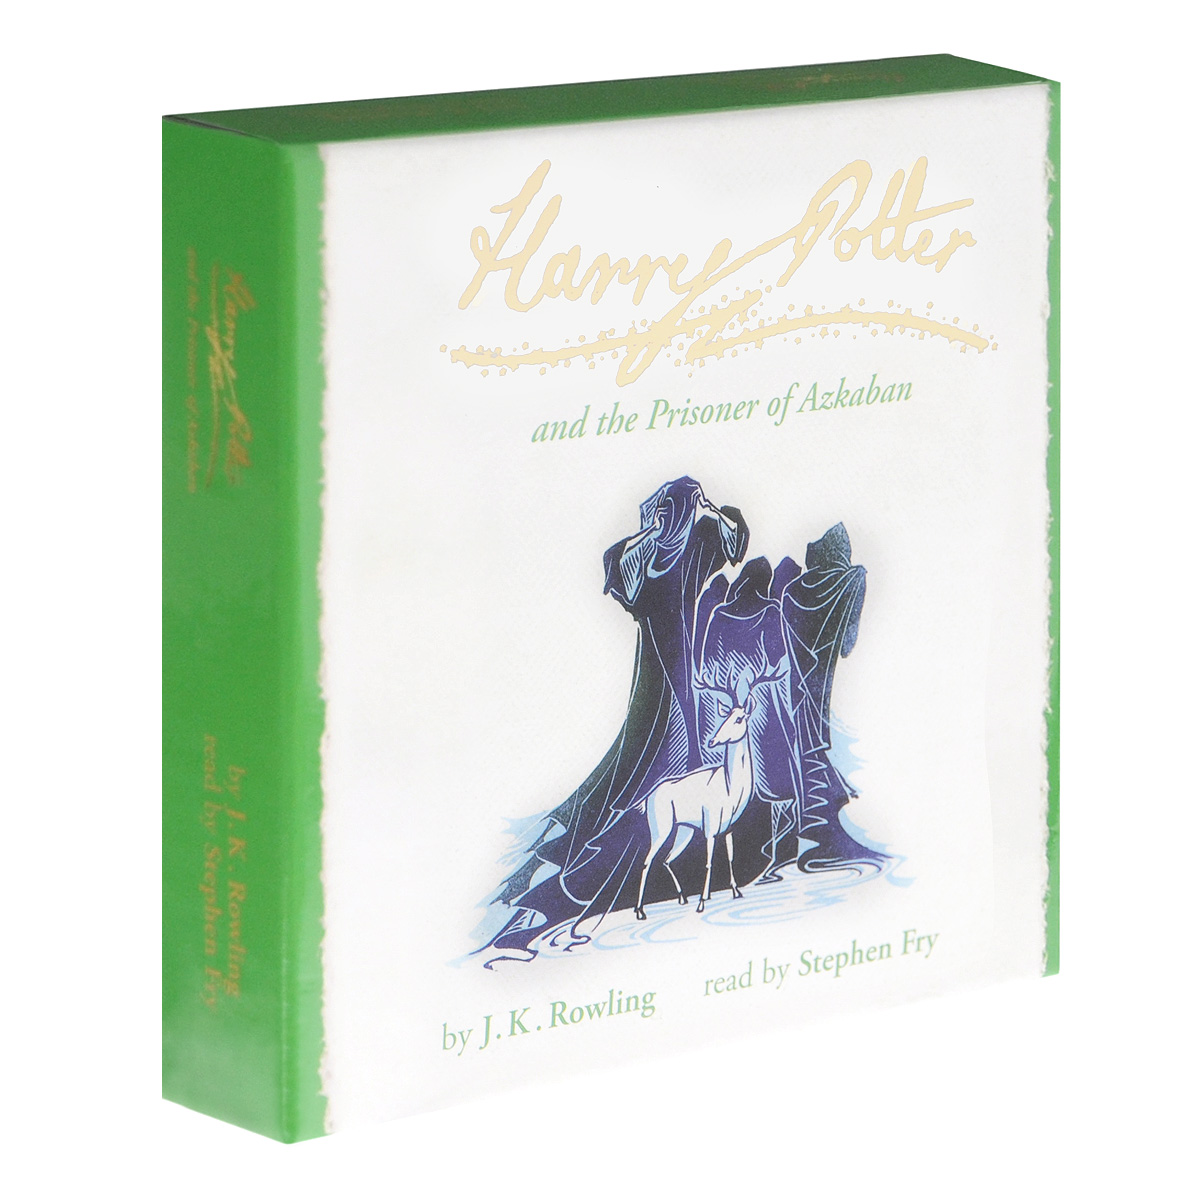 Harry Potter and the Prisoner of Azkaban (аудиокнига на 10 CD)